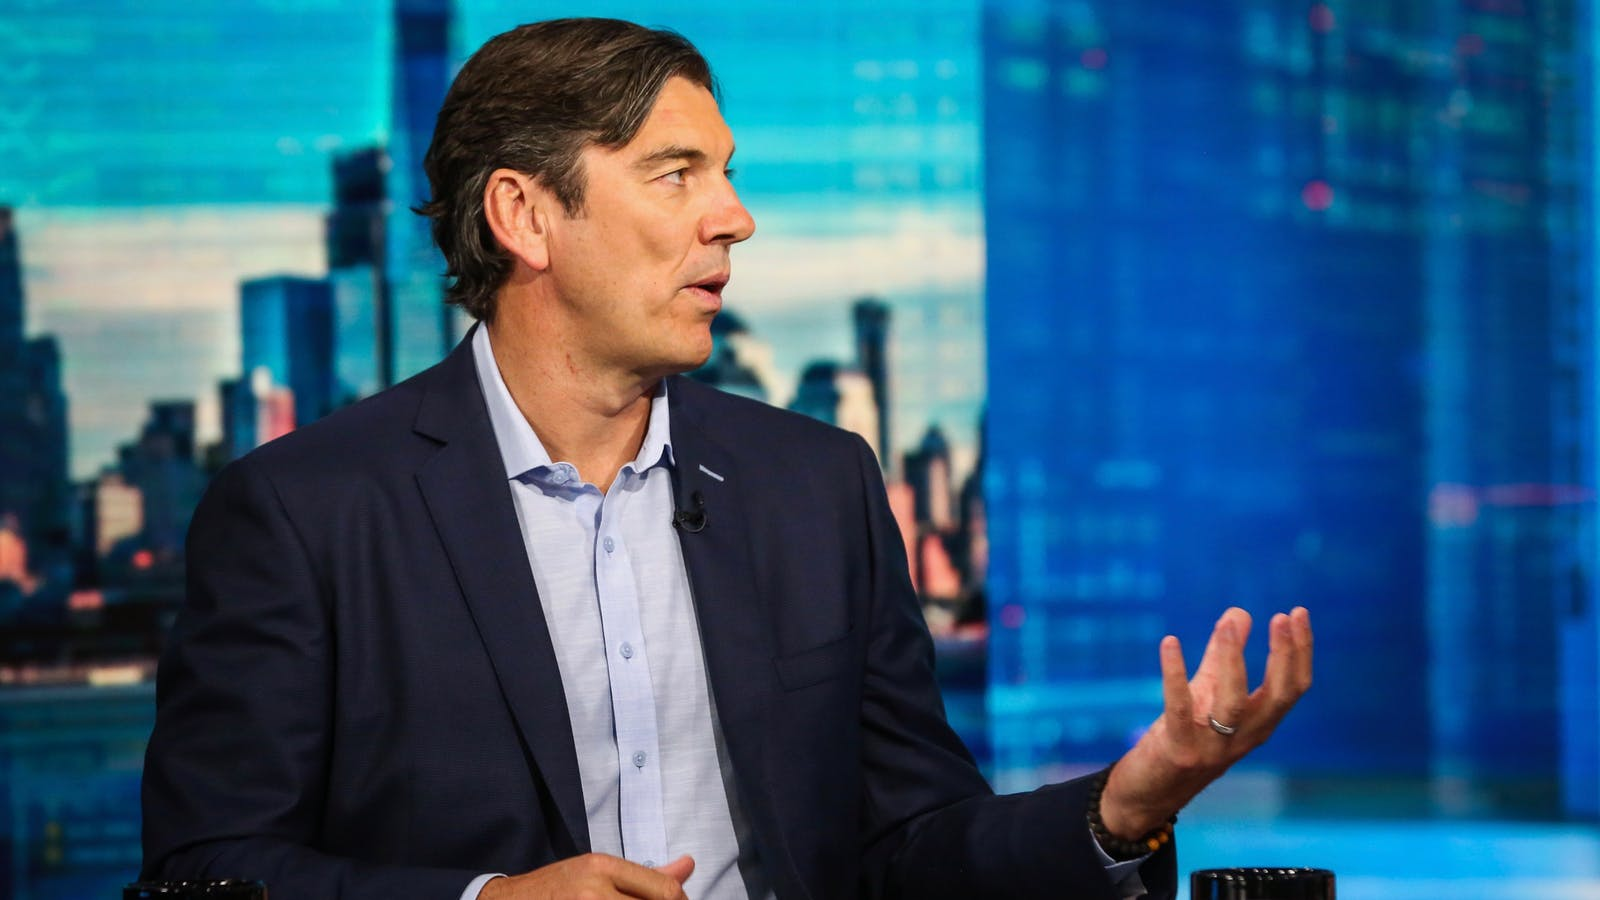 Oath CEO Tim Armstrong. Photo by Bloomberg